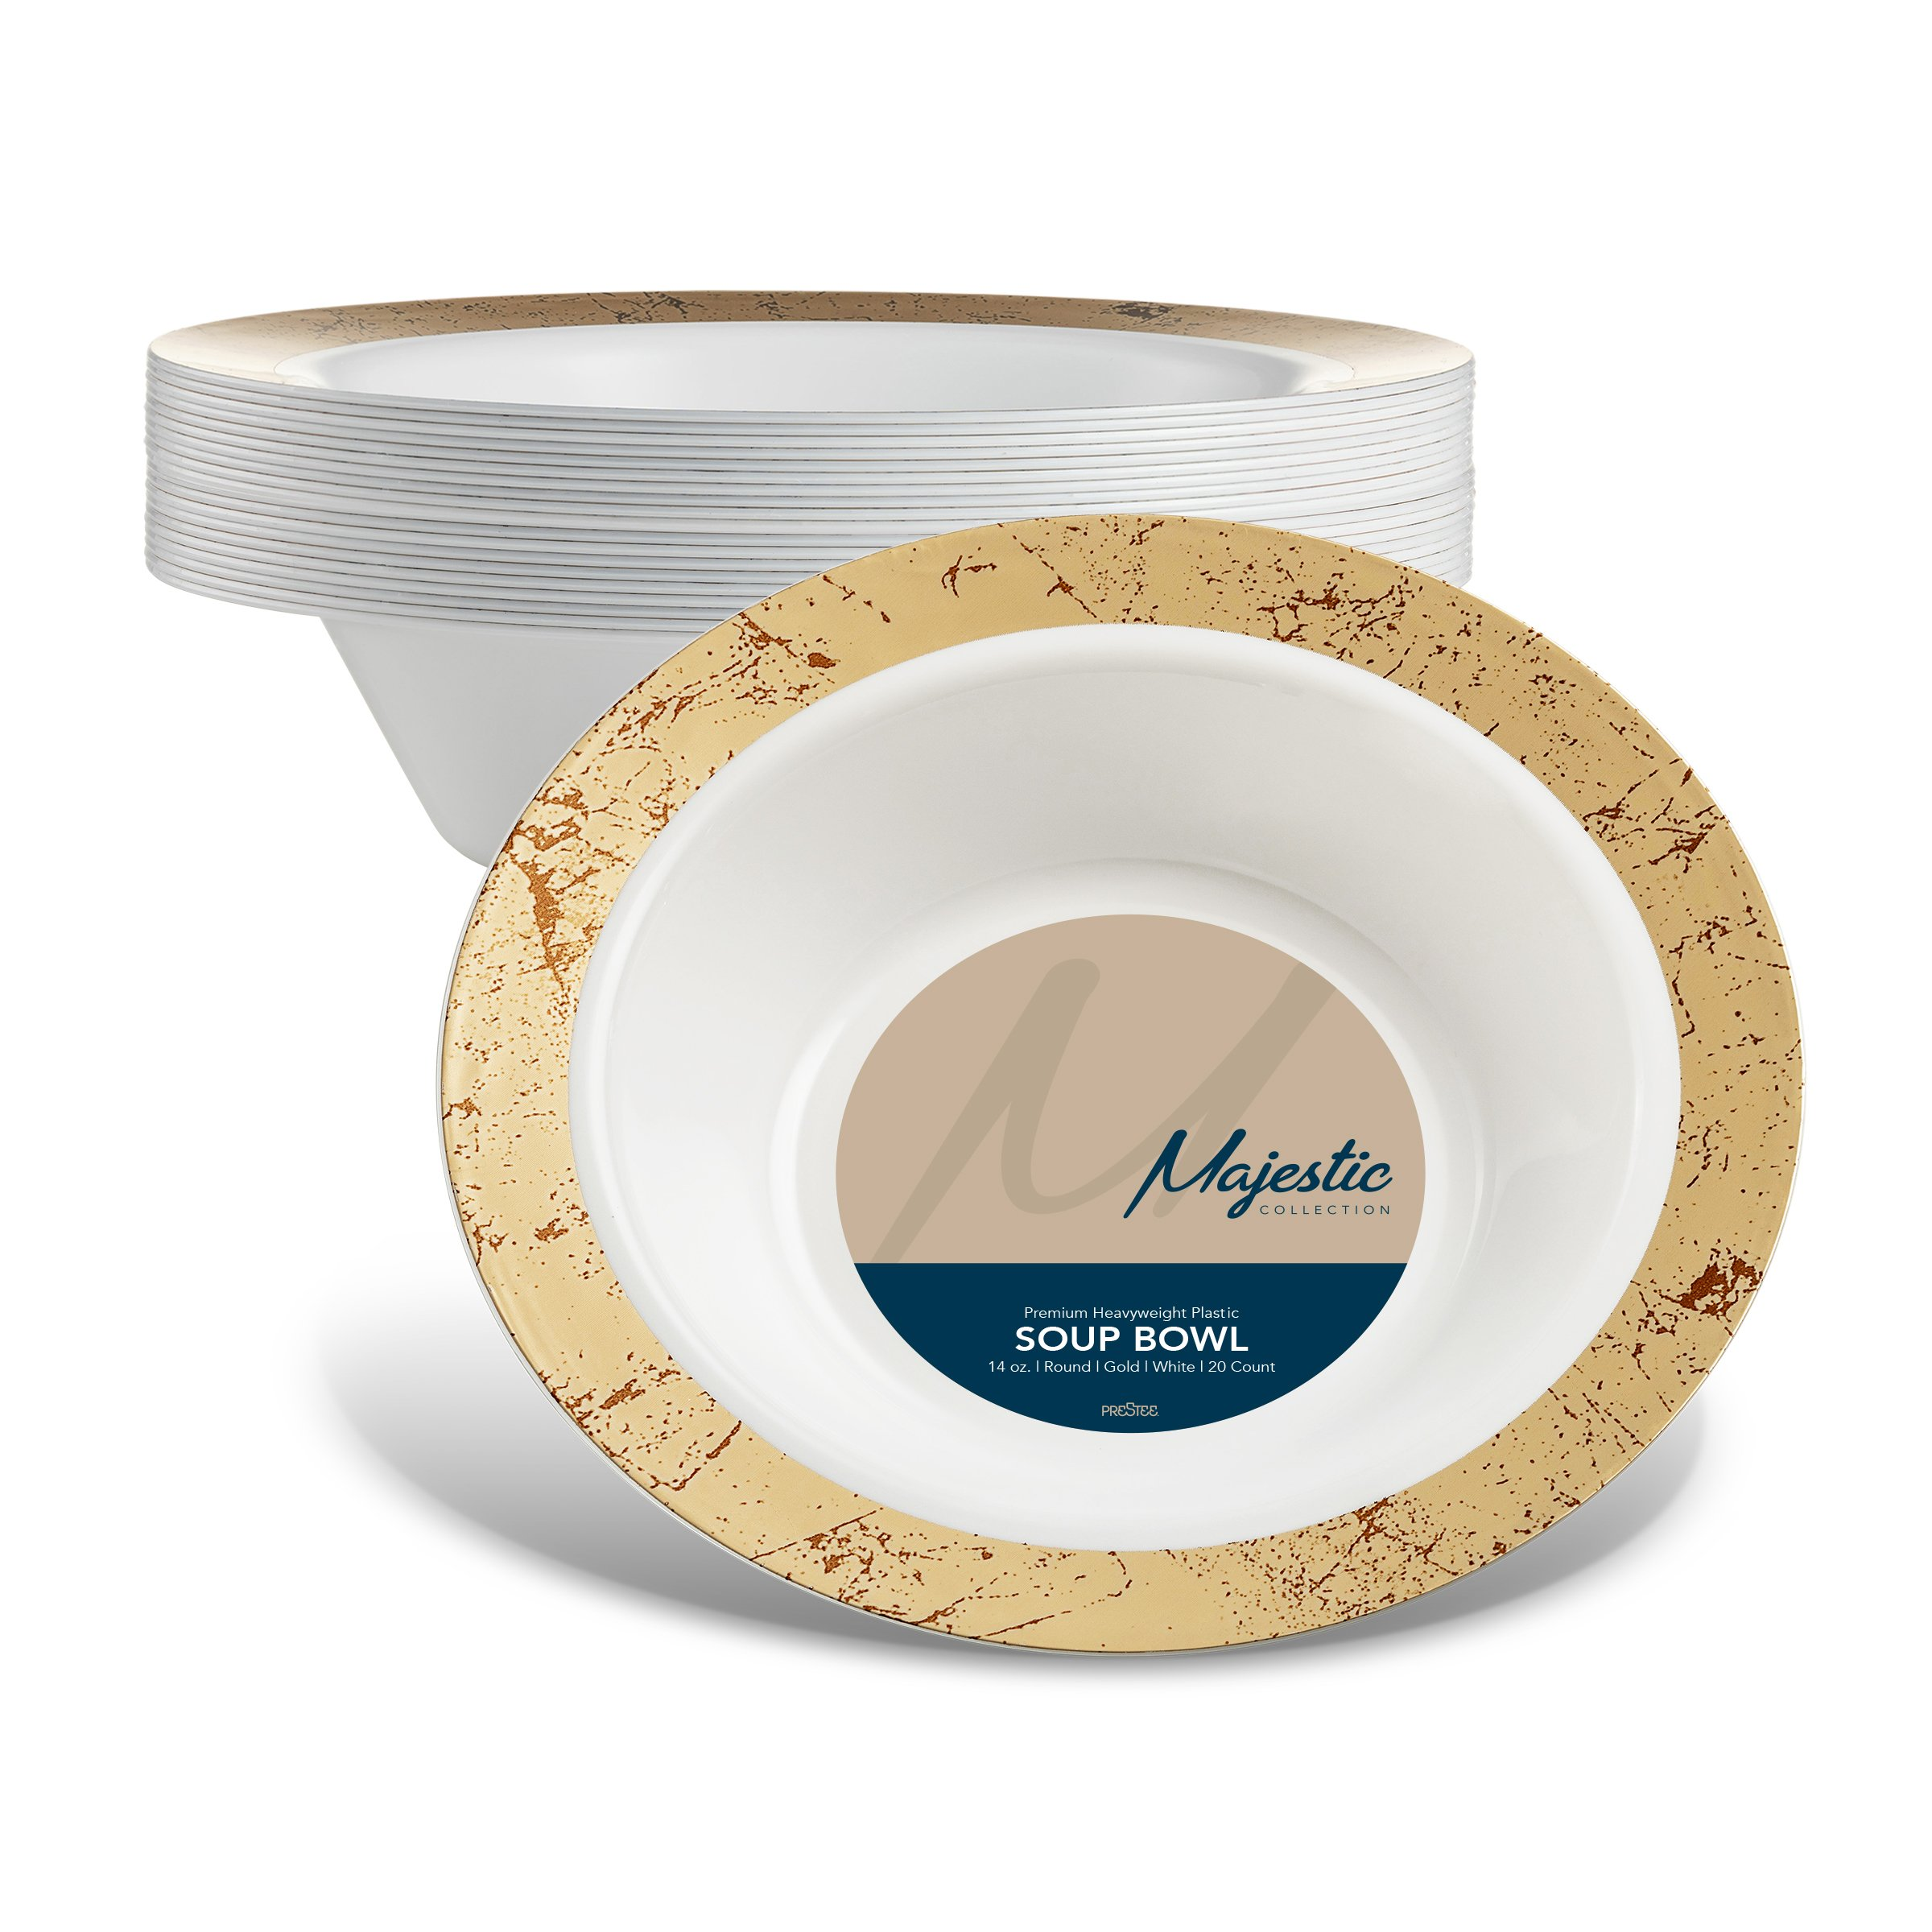 MAJESTIC 14-Oz. Plastic Soup Bowls | 20 Pack | White with Gold Speckled Rim | Disposable | For Weddings, Parties, Holidays & Occasions.